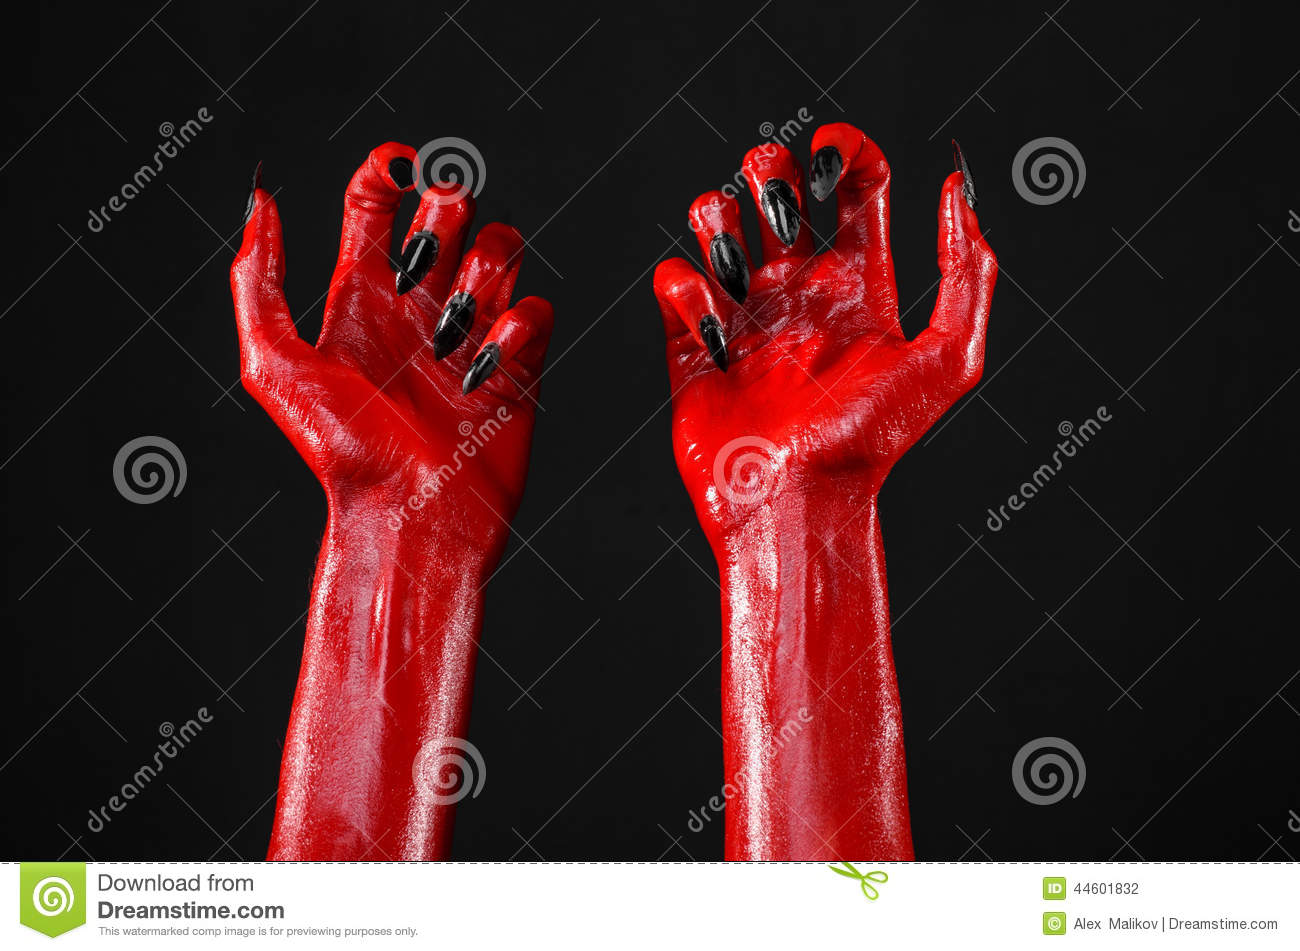 Red devils hands with black nails red hands of satan halloween royalty free stock photo biocorpaavc Gallery